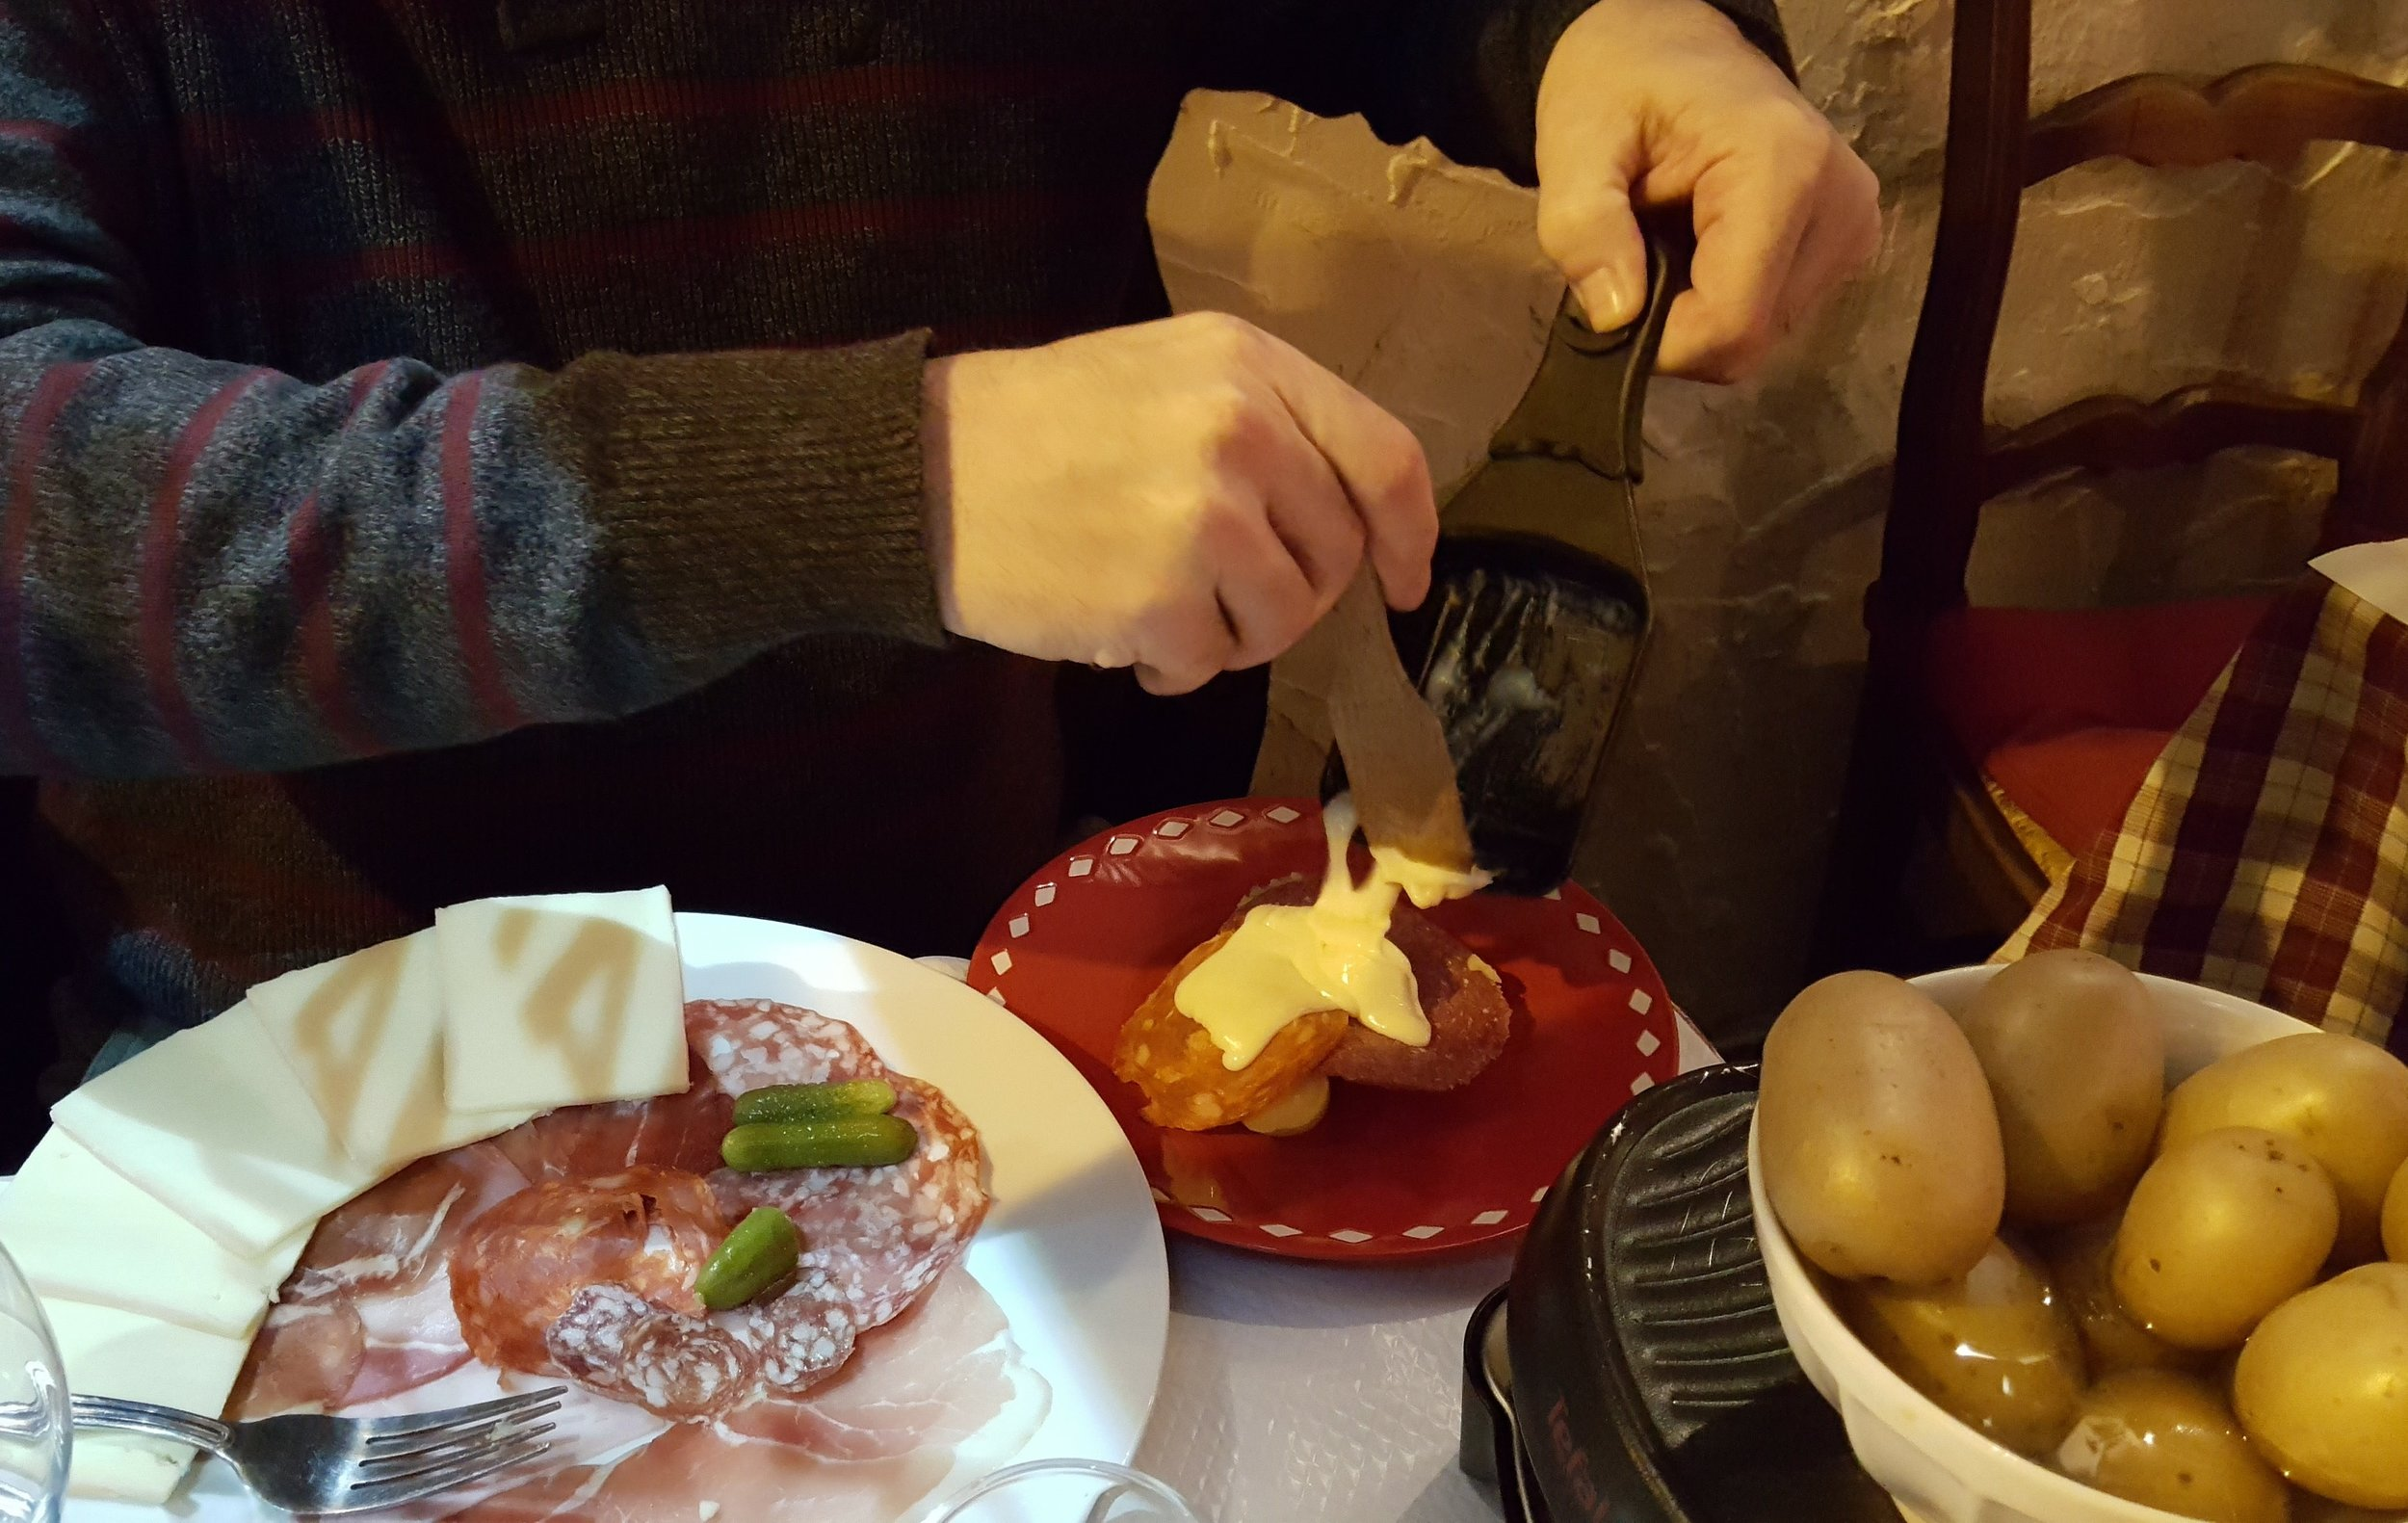 Melted Raclette